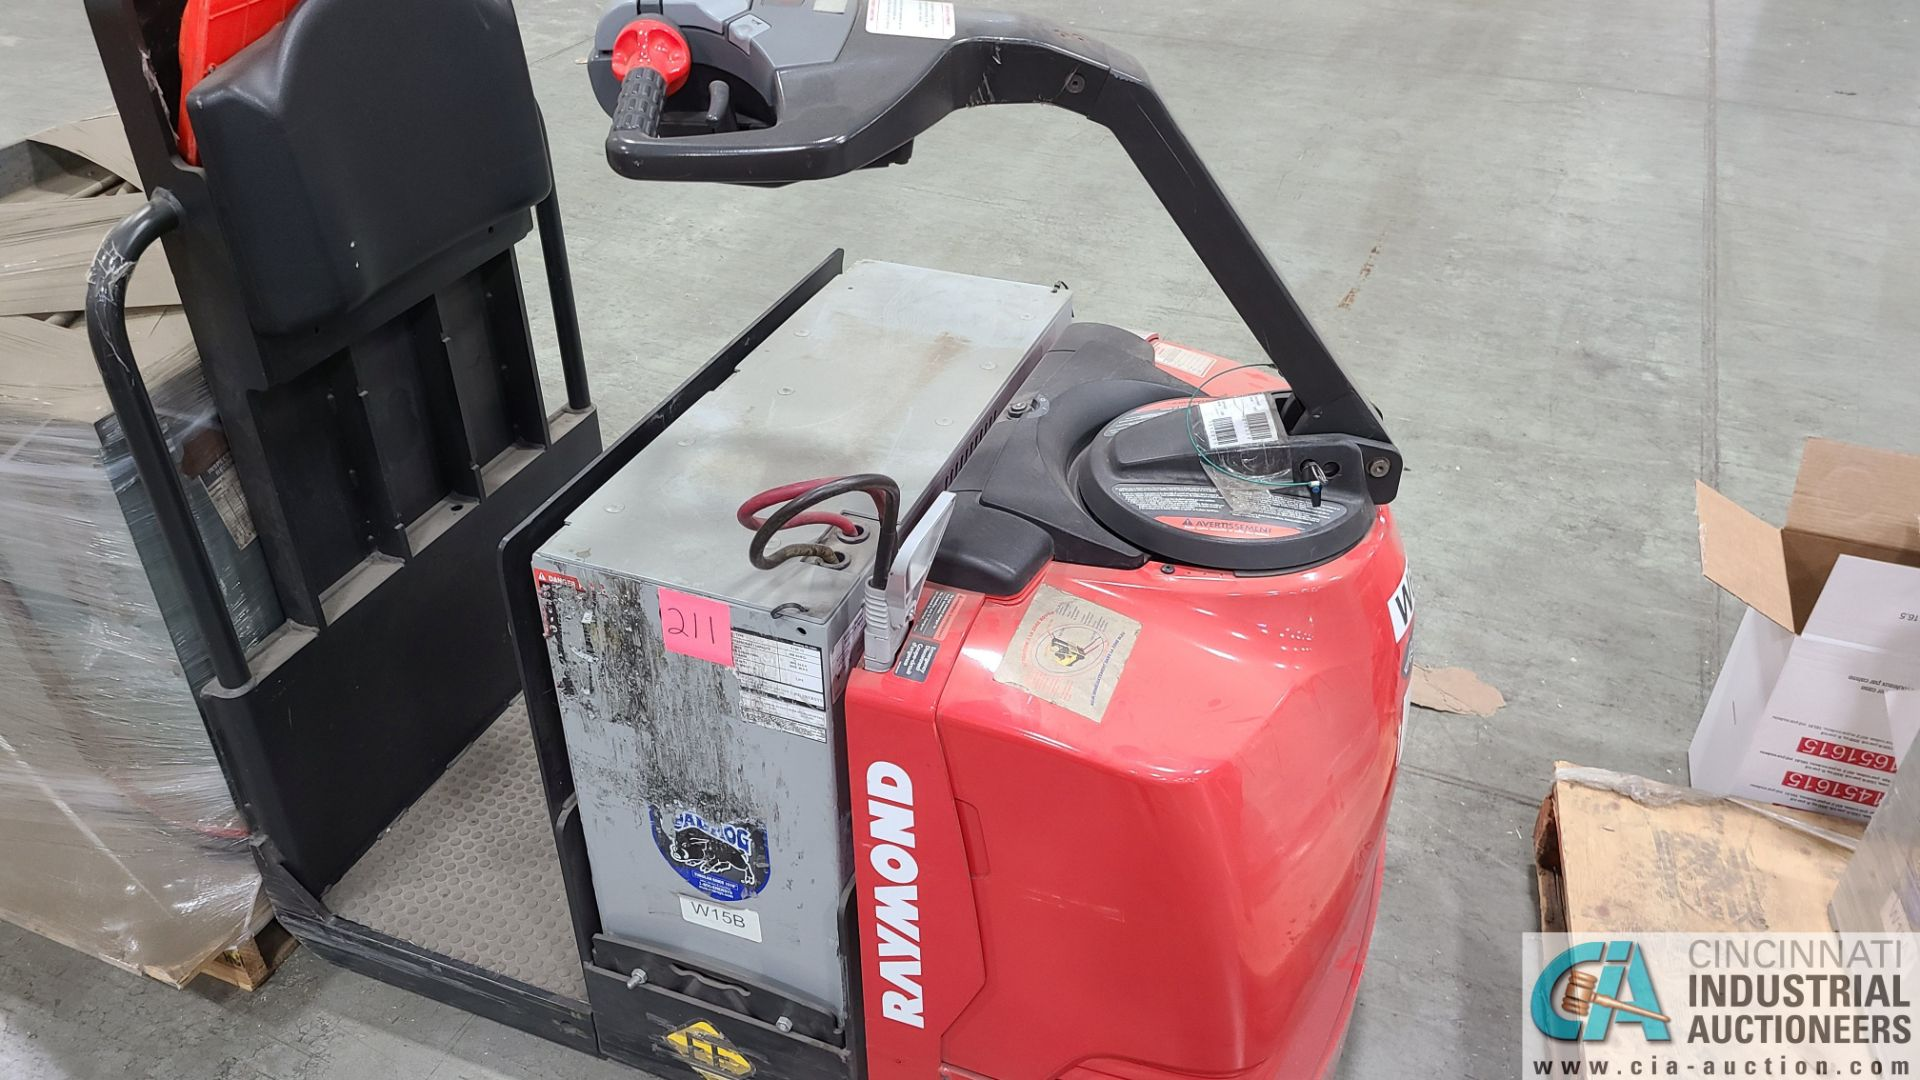 RAYMOND MODEL 8510 ELECTRIC PALLET TRUCK; S/N 851-15-11742, W/ BATTERY, HOURS N/A (NEW 2015) (2570 - Image 3 of 4